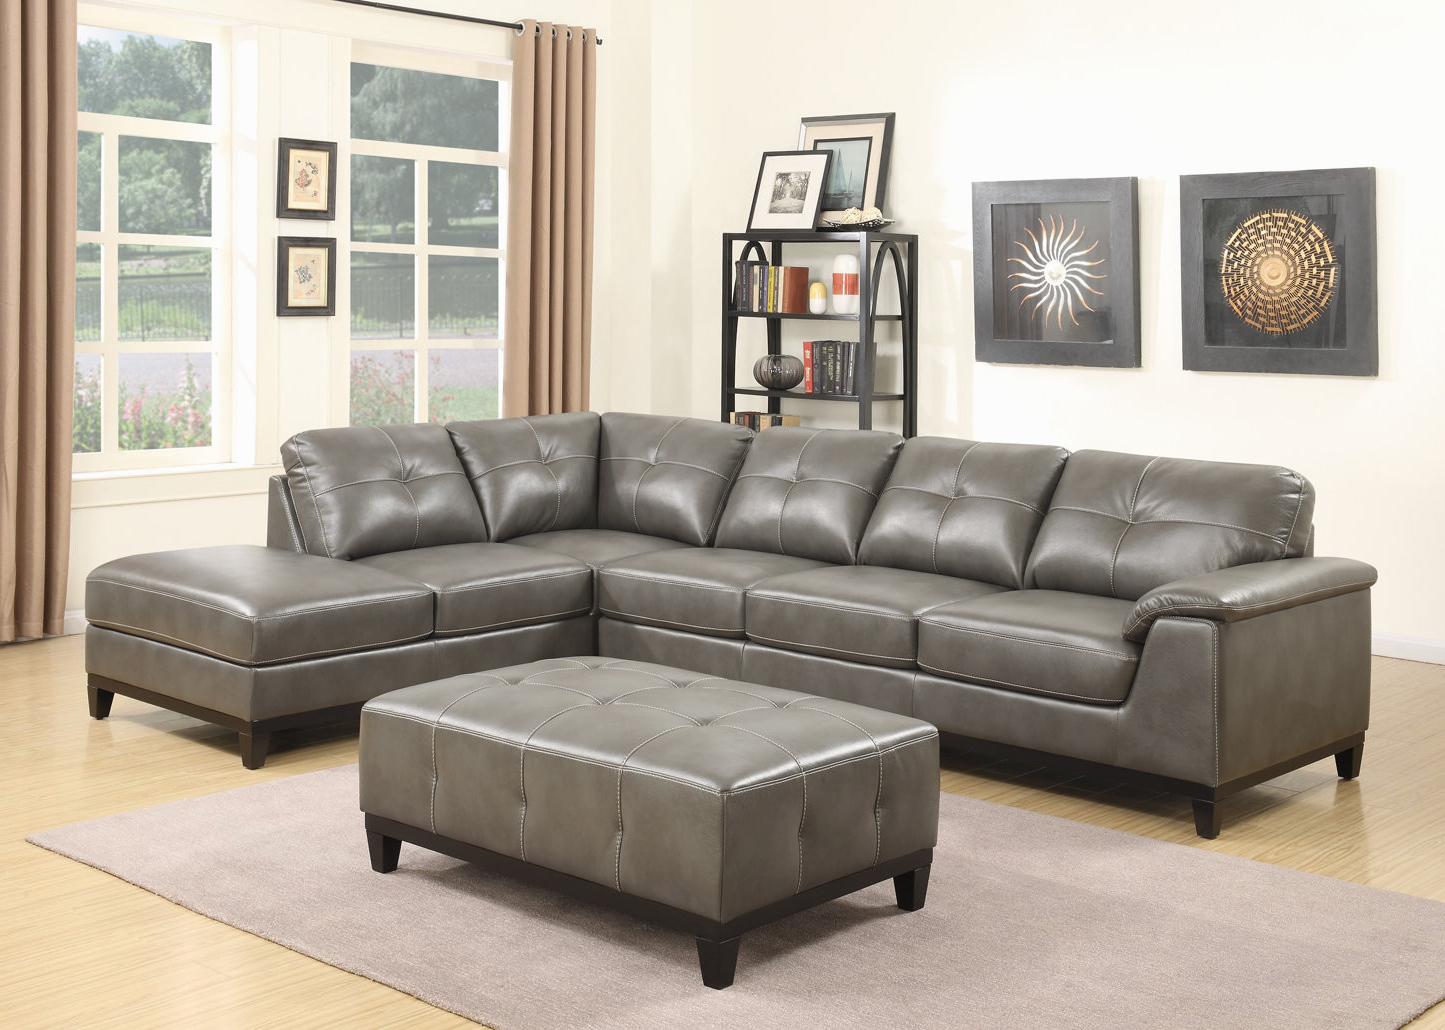 Fashionable Aquarius Light Grey 2 Piece Sectionals With Laf Chaise Regarding Living Room Sofa With Chaise Beautiful Trent Austin Design Lonato (View 8 of 20)